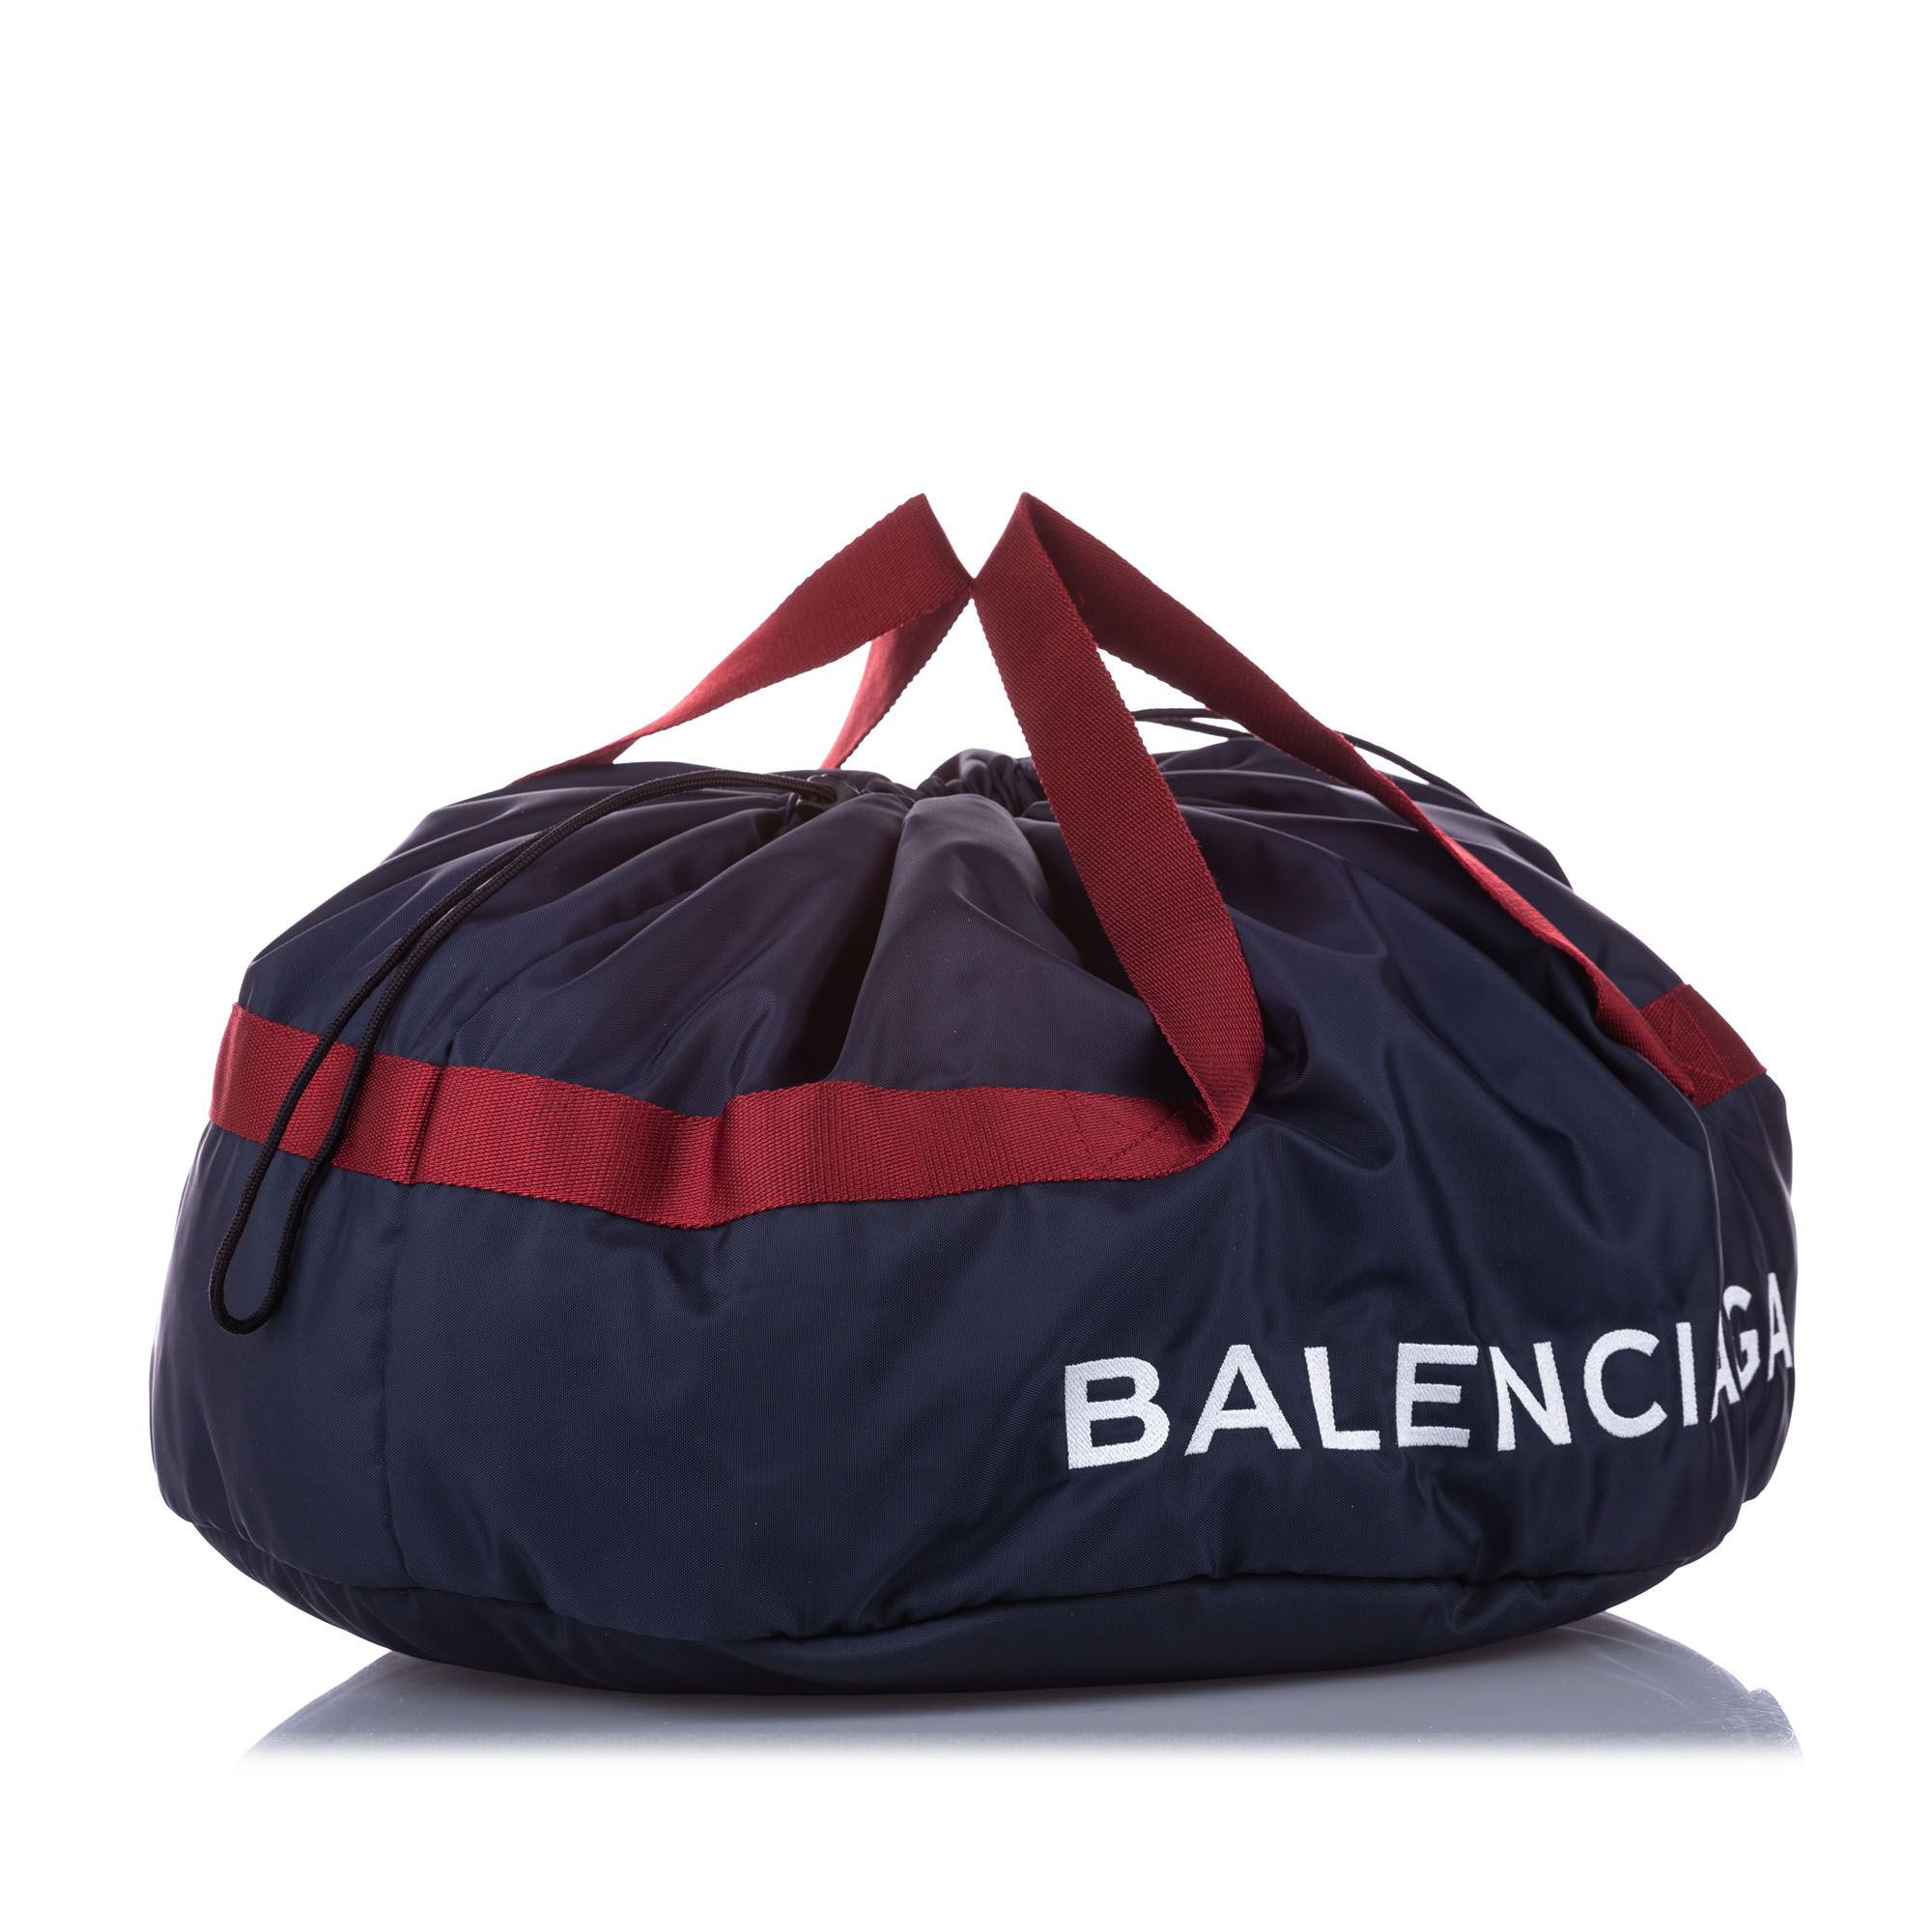 Balenciaga S Wheel Everyday Nylon Travel Bag Black